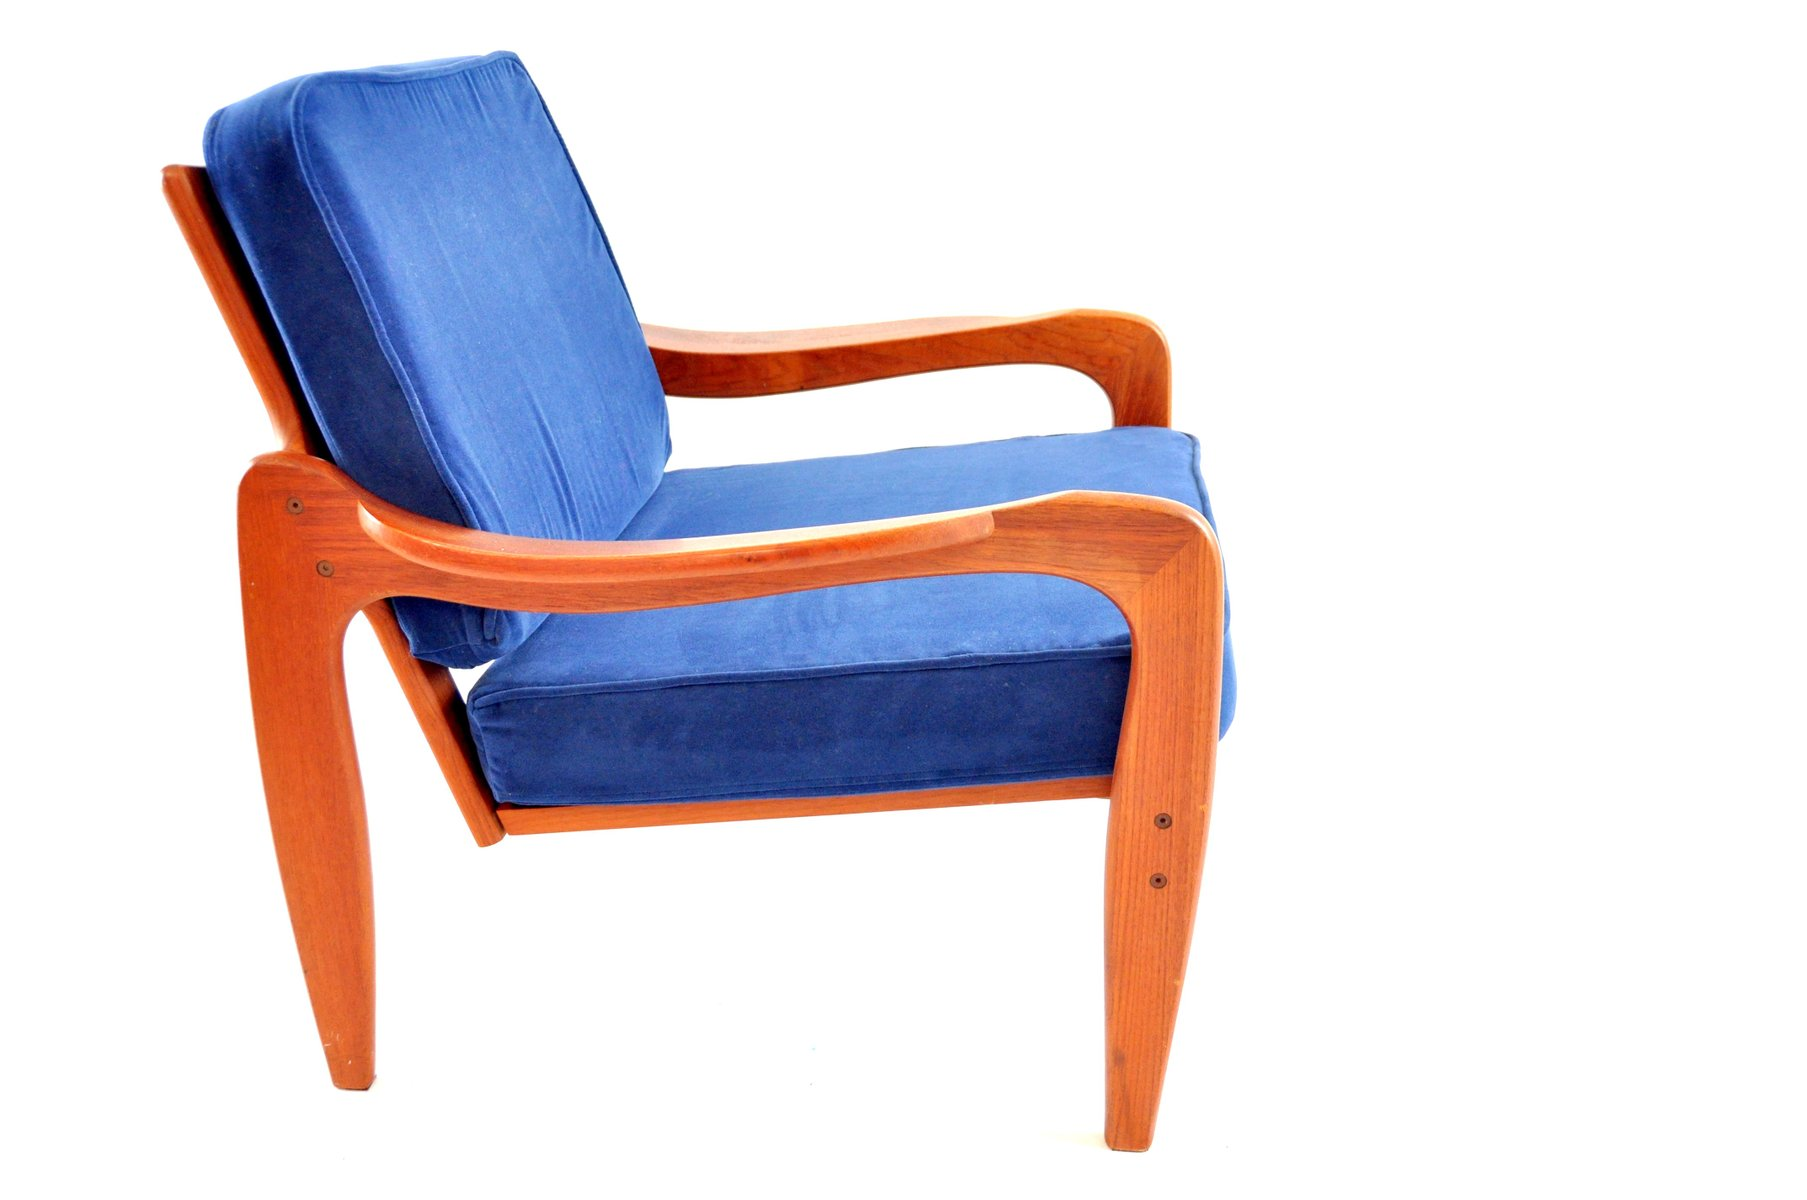 Vintage Danish Teak Lounge Chair from Komfort for sale at Pamono